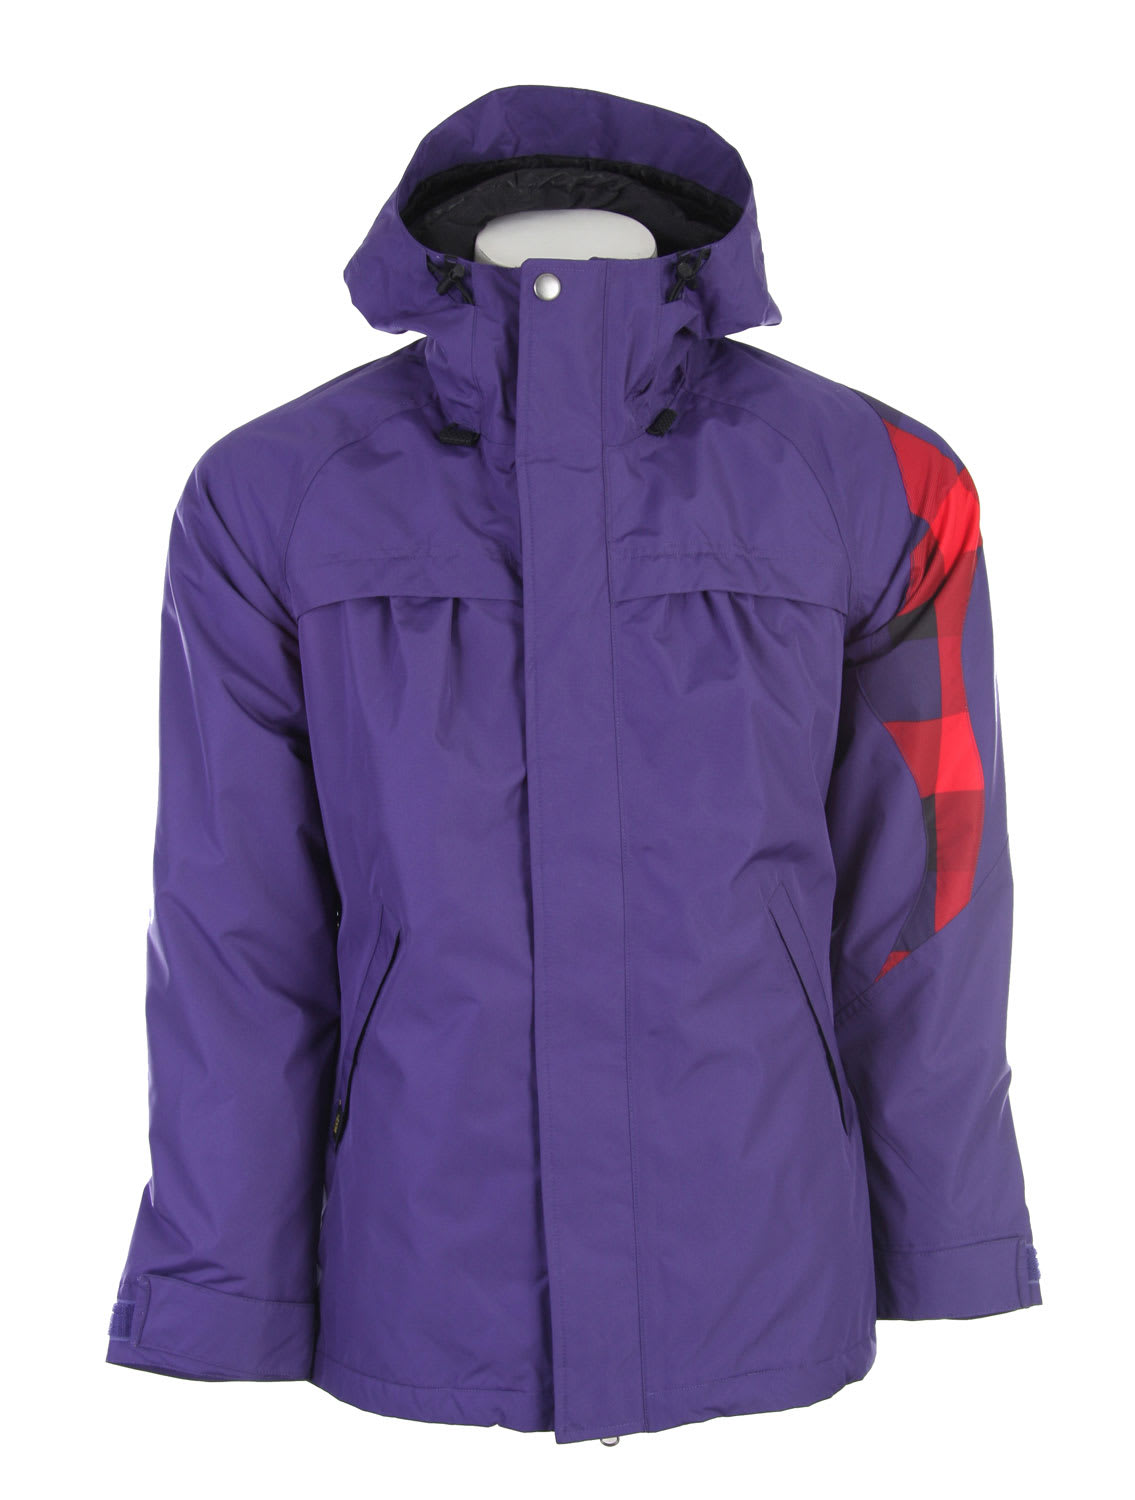 Shop for Vans Sedgewick Snowboard Jacket Purple/Urethane - Women's